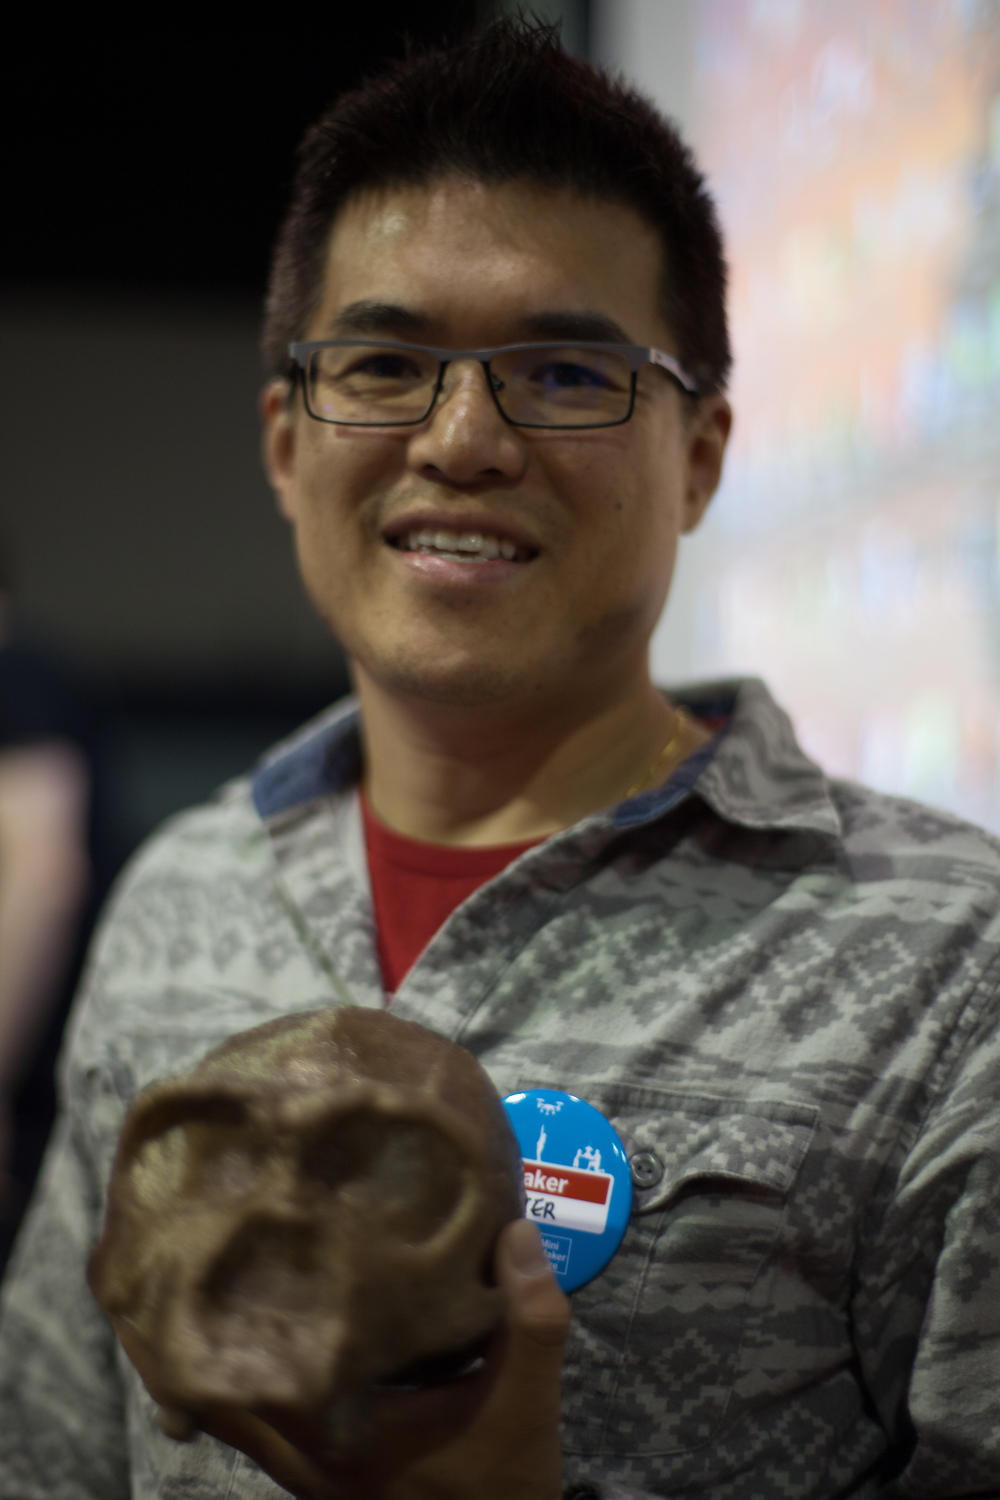 Dr. PeterLau @ Makerwiz, preserving memories of UNESCO World Heritage Sites through 3D printing.